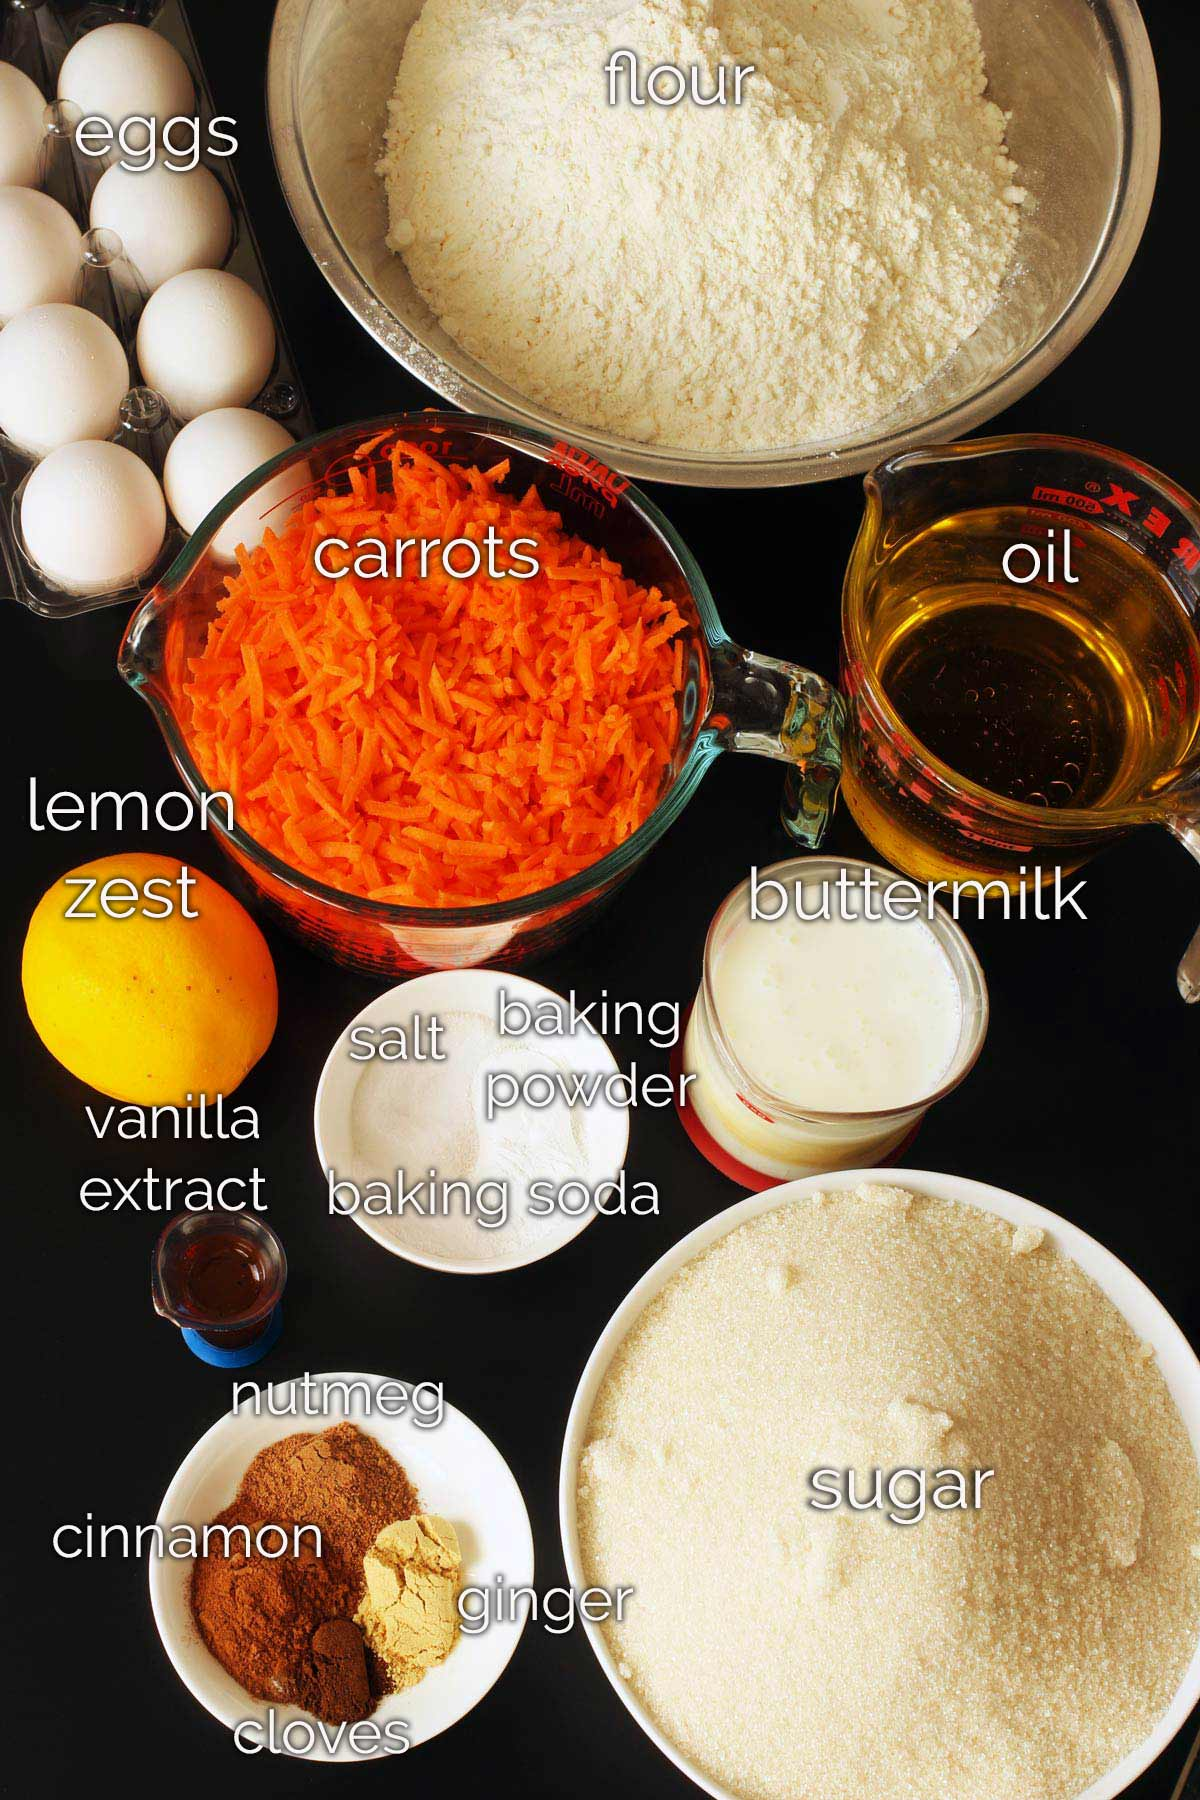 ingredients for carrot bread on black table.